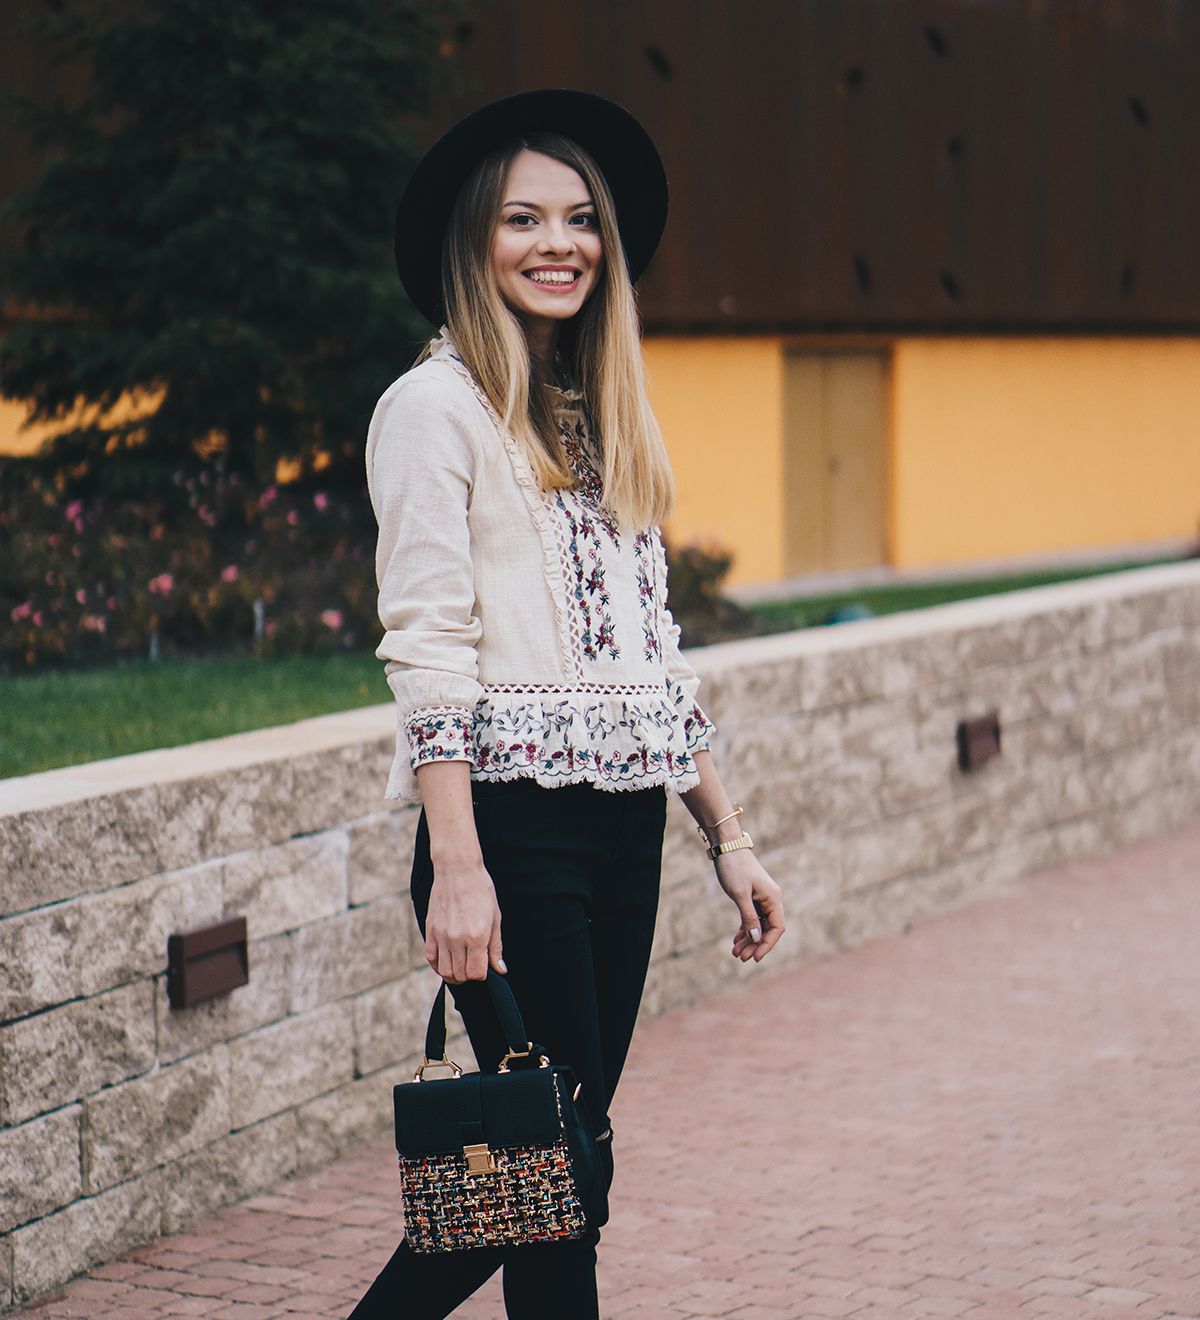 floral-embroidered-blouse-pink-fur-coat-ripped-black-jeans-brogues-winter-outfit-7